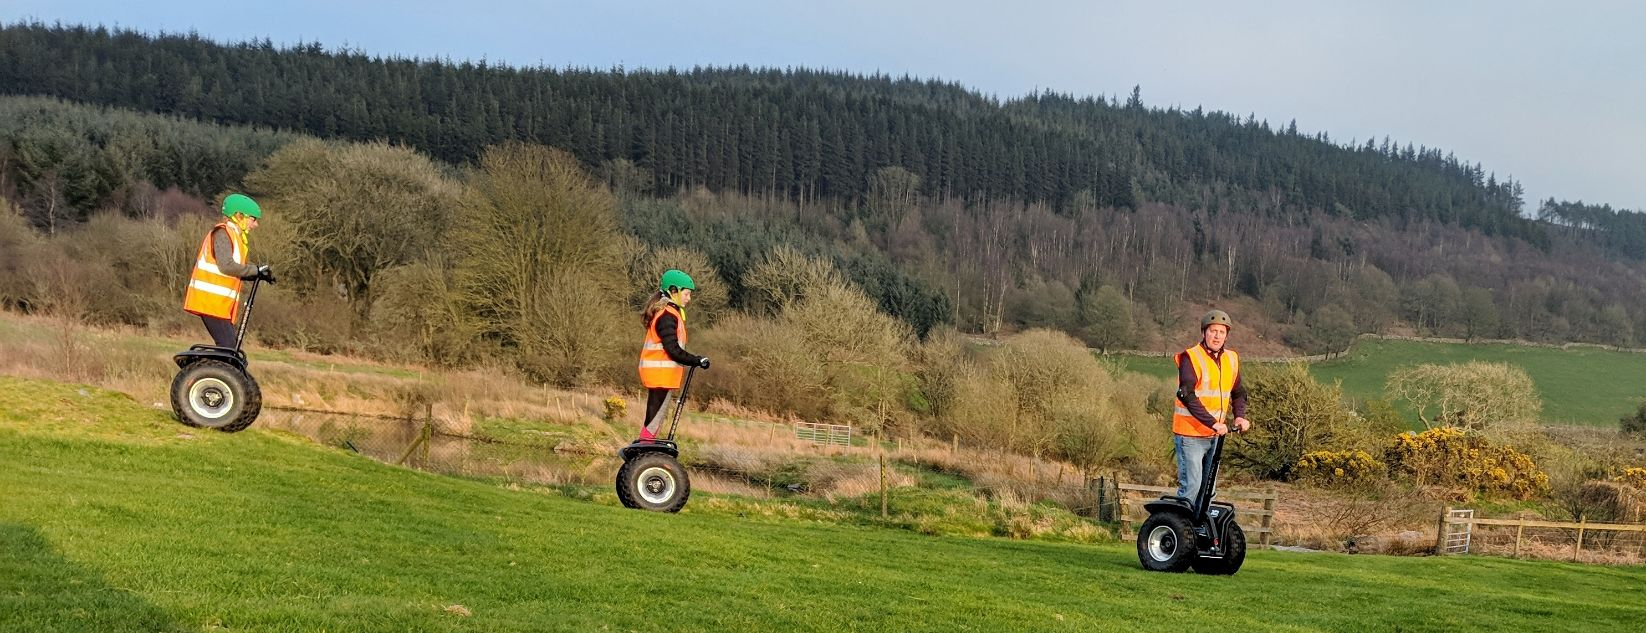 Segway tours at Gorsebank Glamping Pods near Dumfries